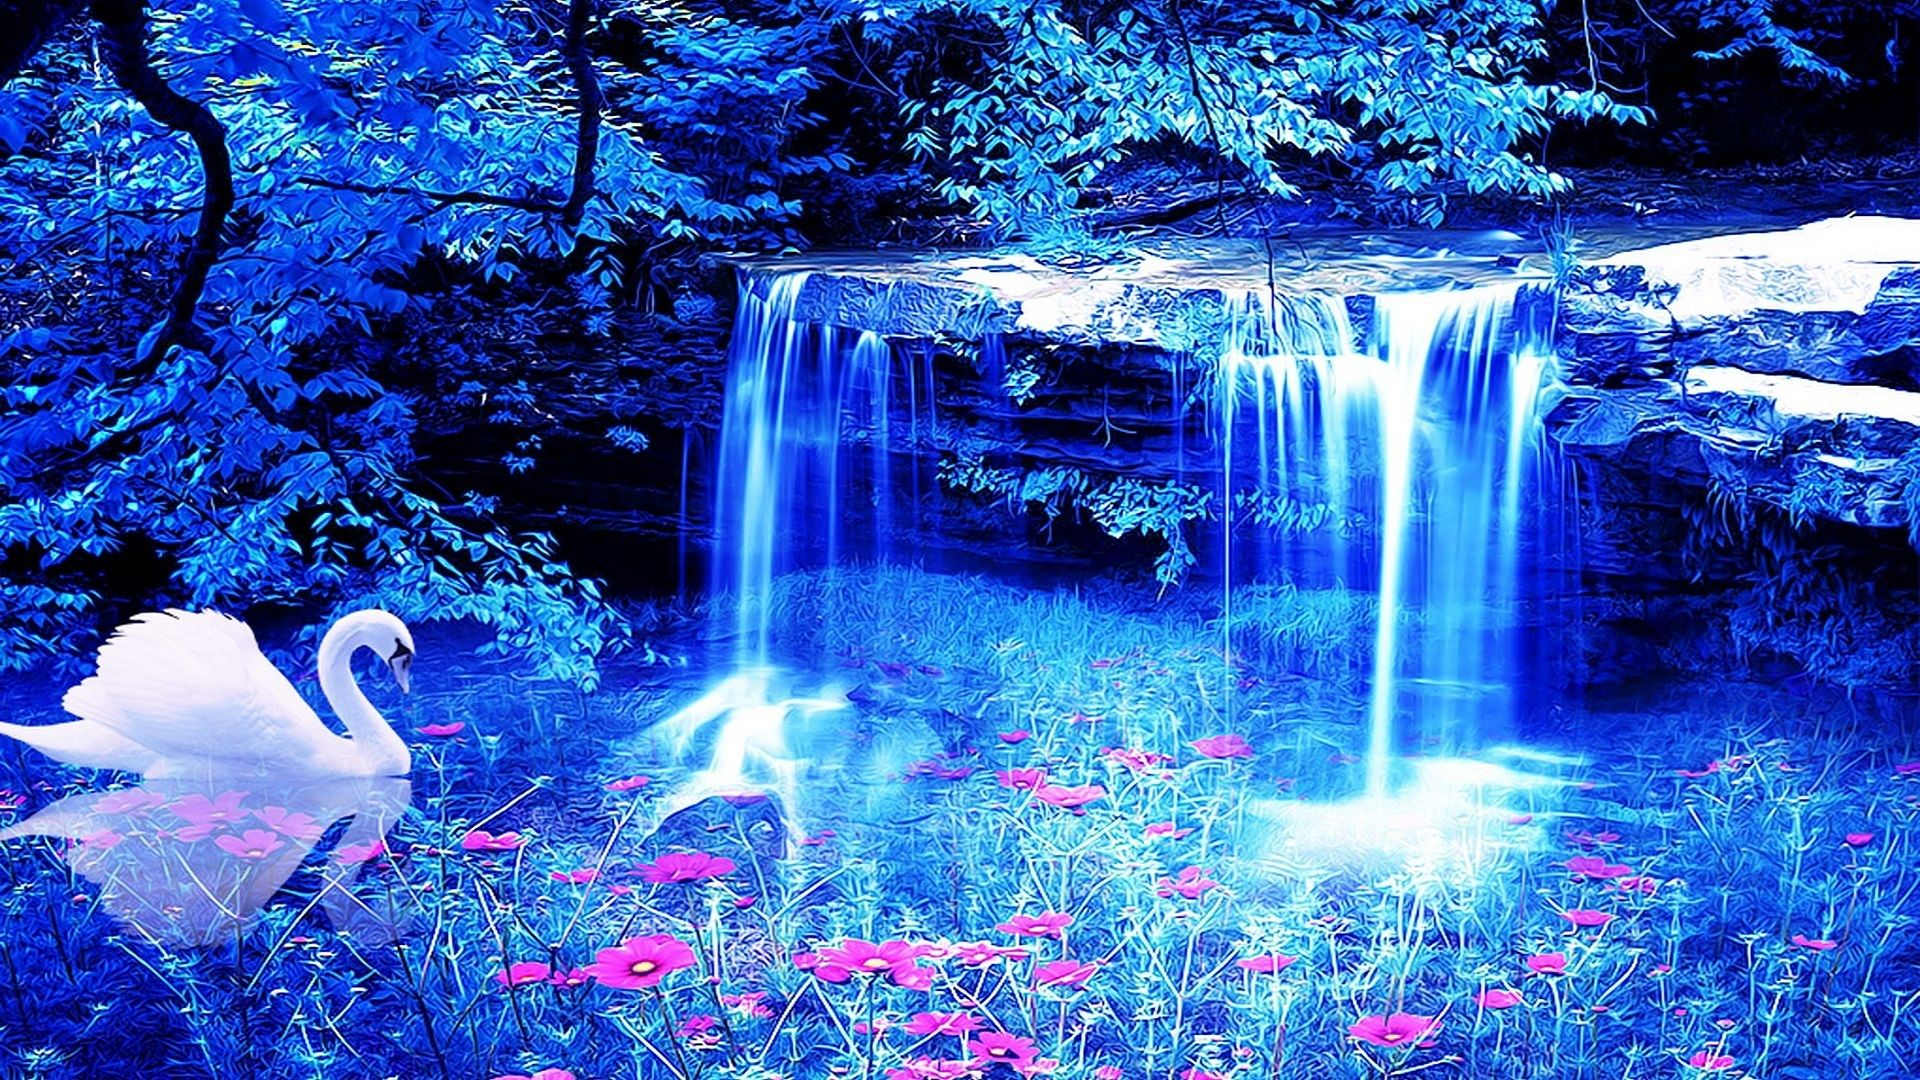 Beautiful Waterfalls Hd Wallpaper Background Free For Desktop Beautiful Waterfalls Waterfall Wallpaper Waterfall